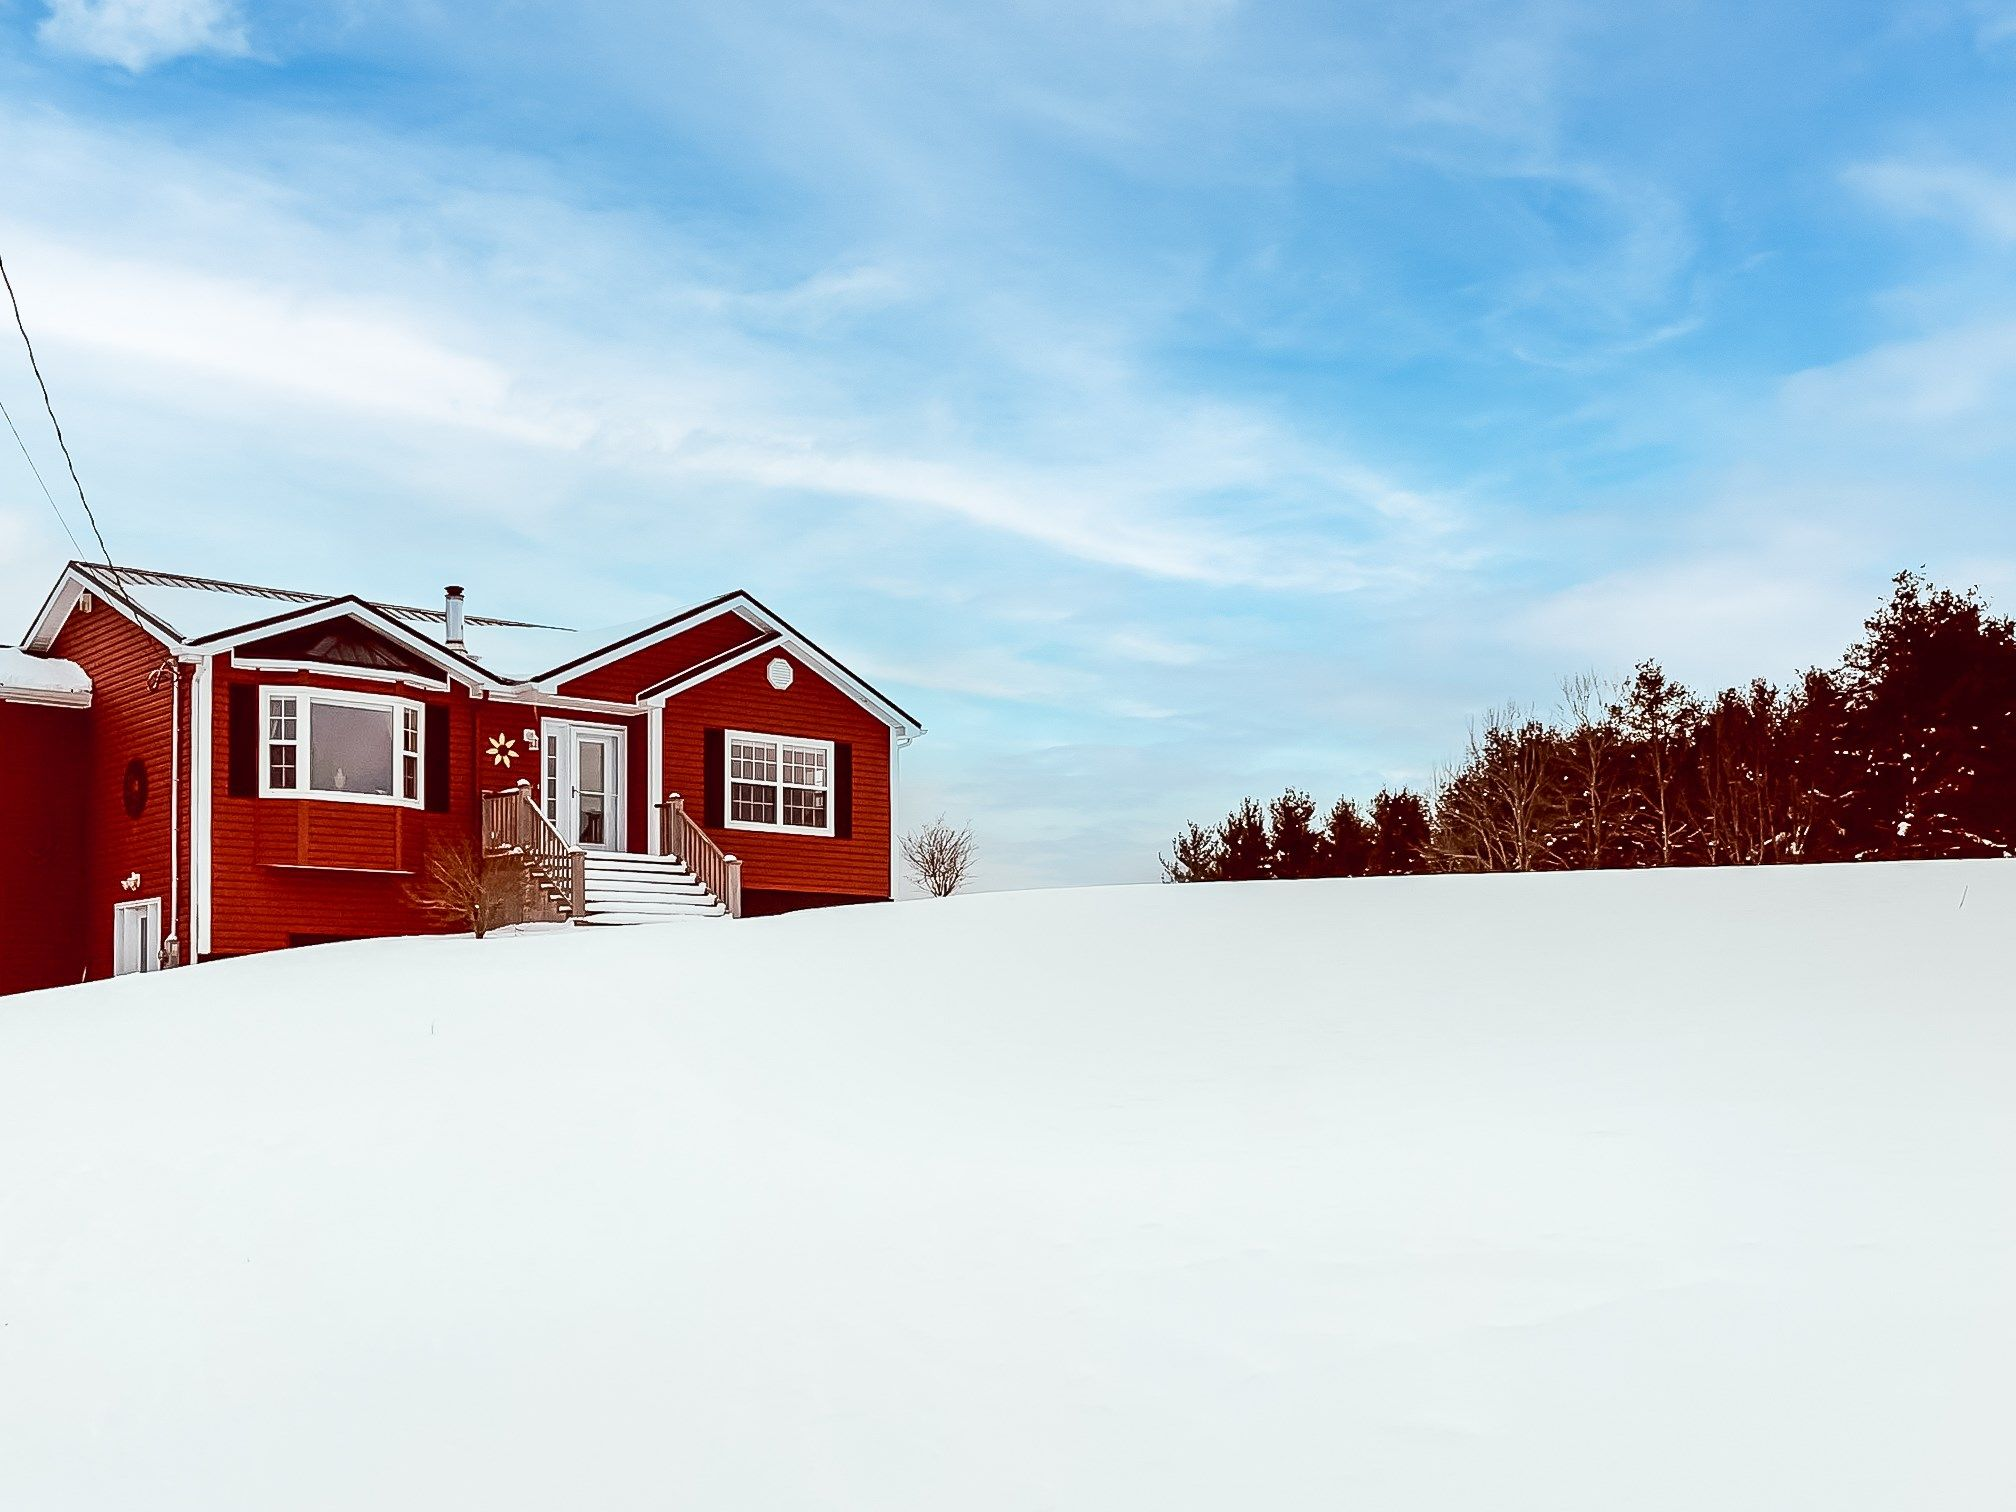 Main Photo: 1248 Conquerall Road in Conquerall Mills: 405-Lunenburg County Residential for sale (South Shore)  : MLS®# 202101420